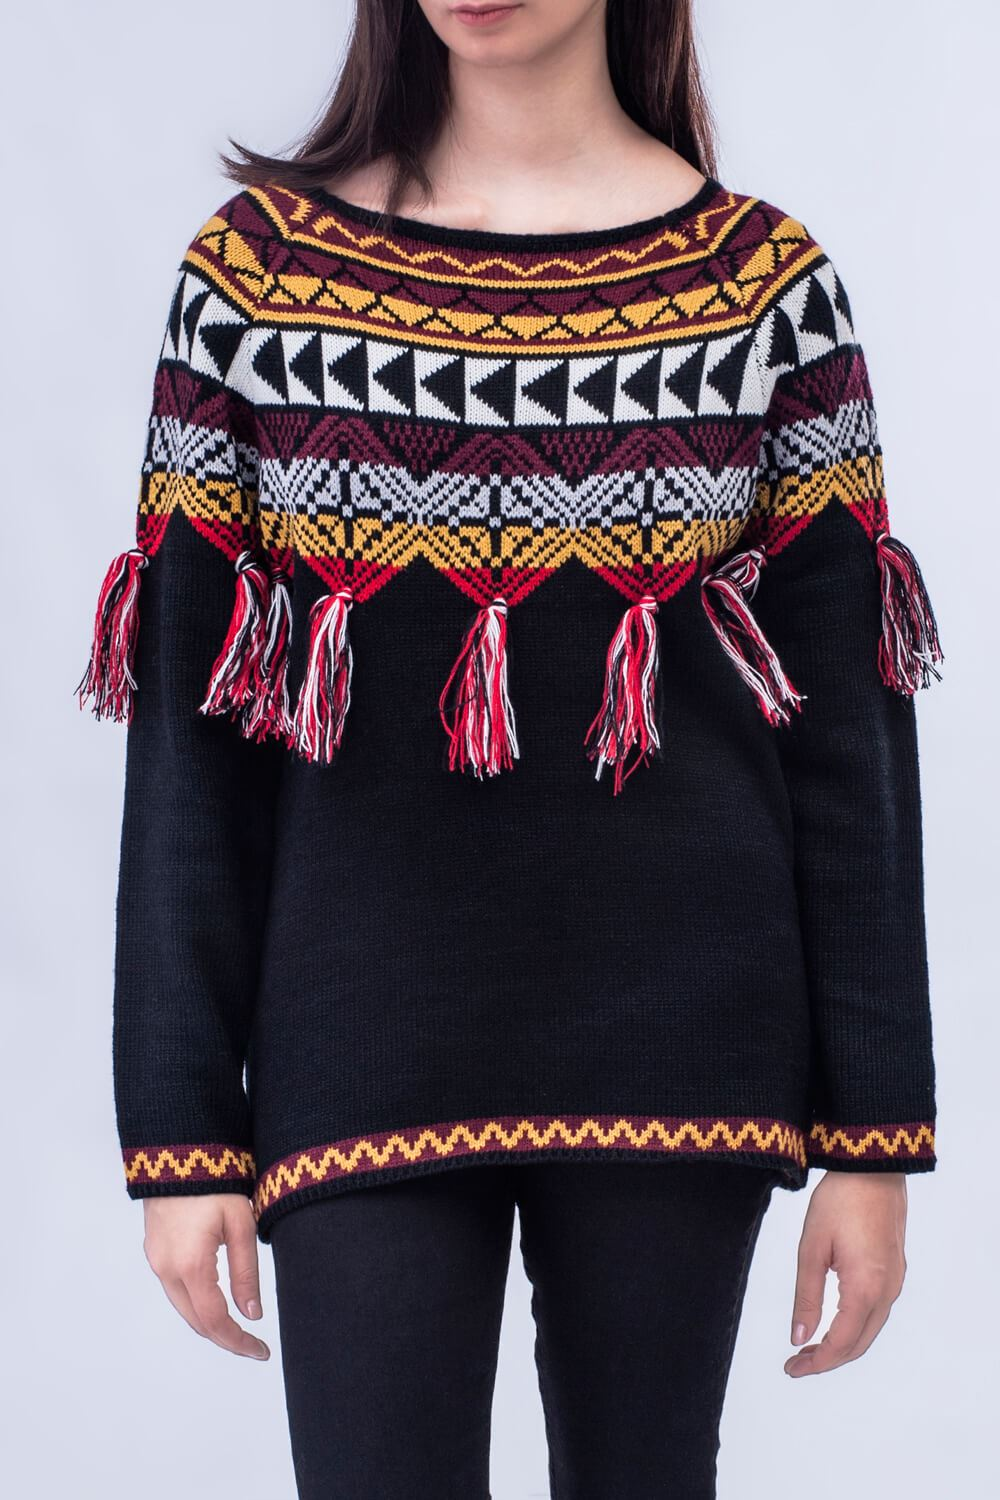 Breakout Latest Western Winter Dresses Collection 2019 2020